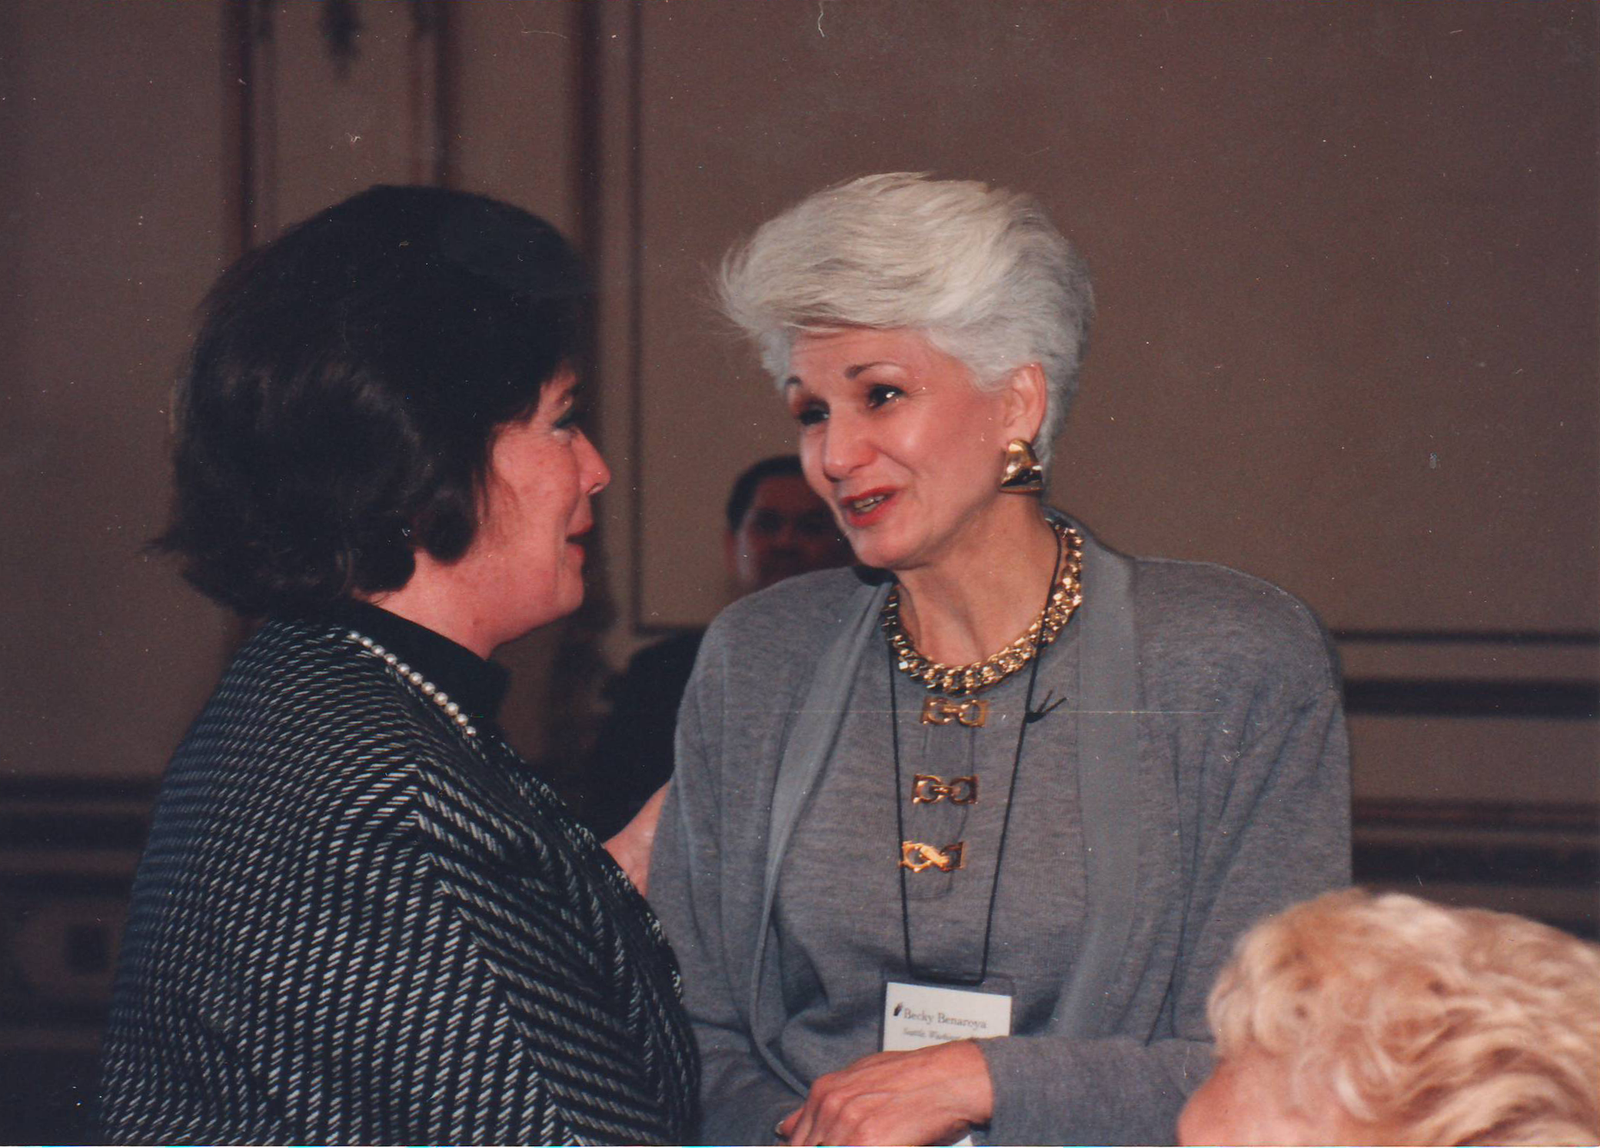 Becky at the International Leadership Conference in San Francisco, October 1993.